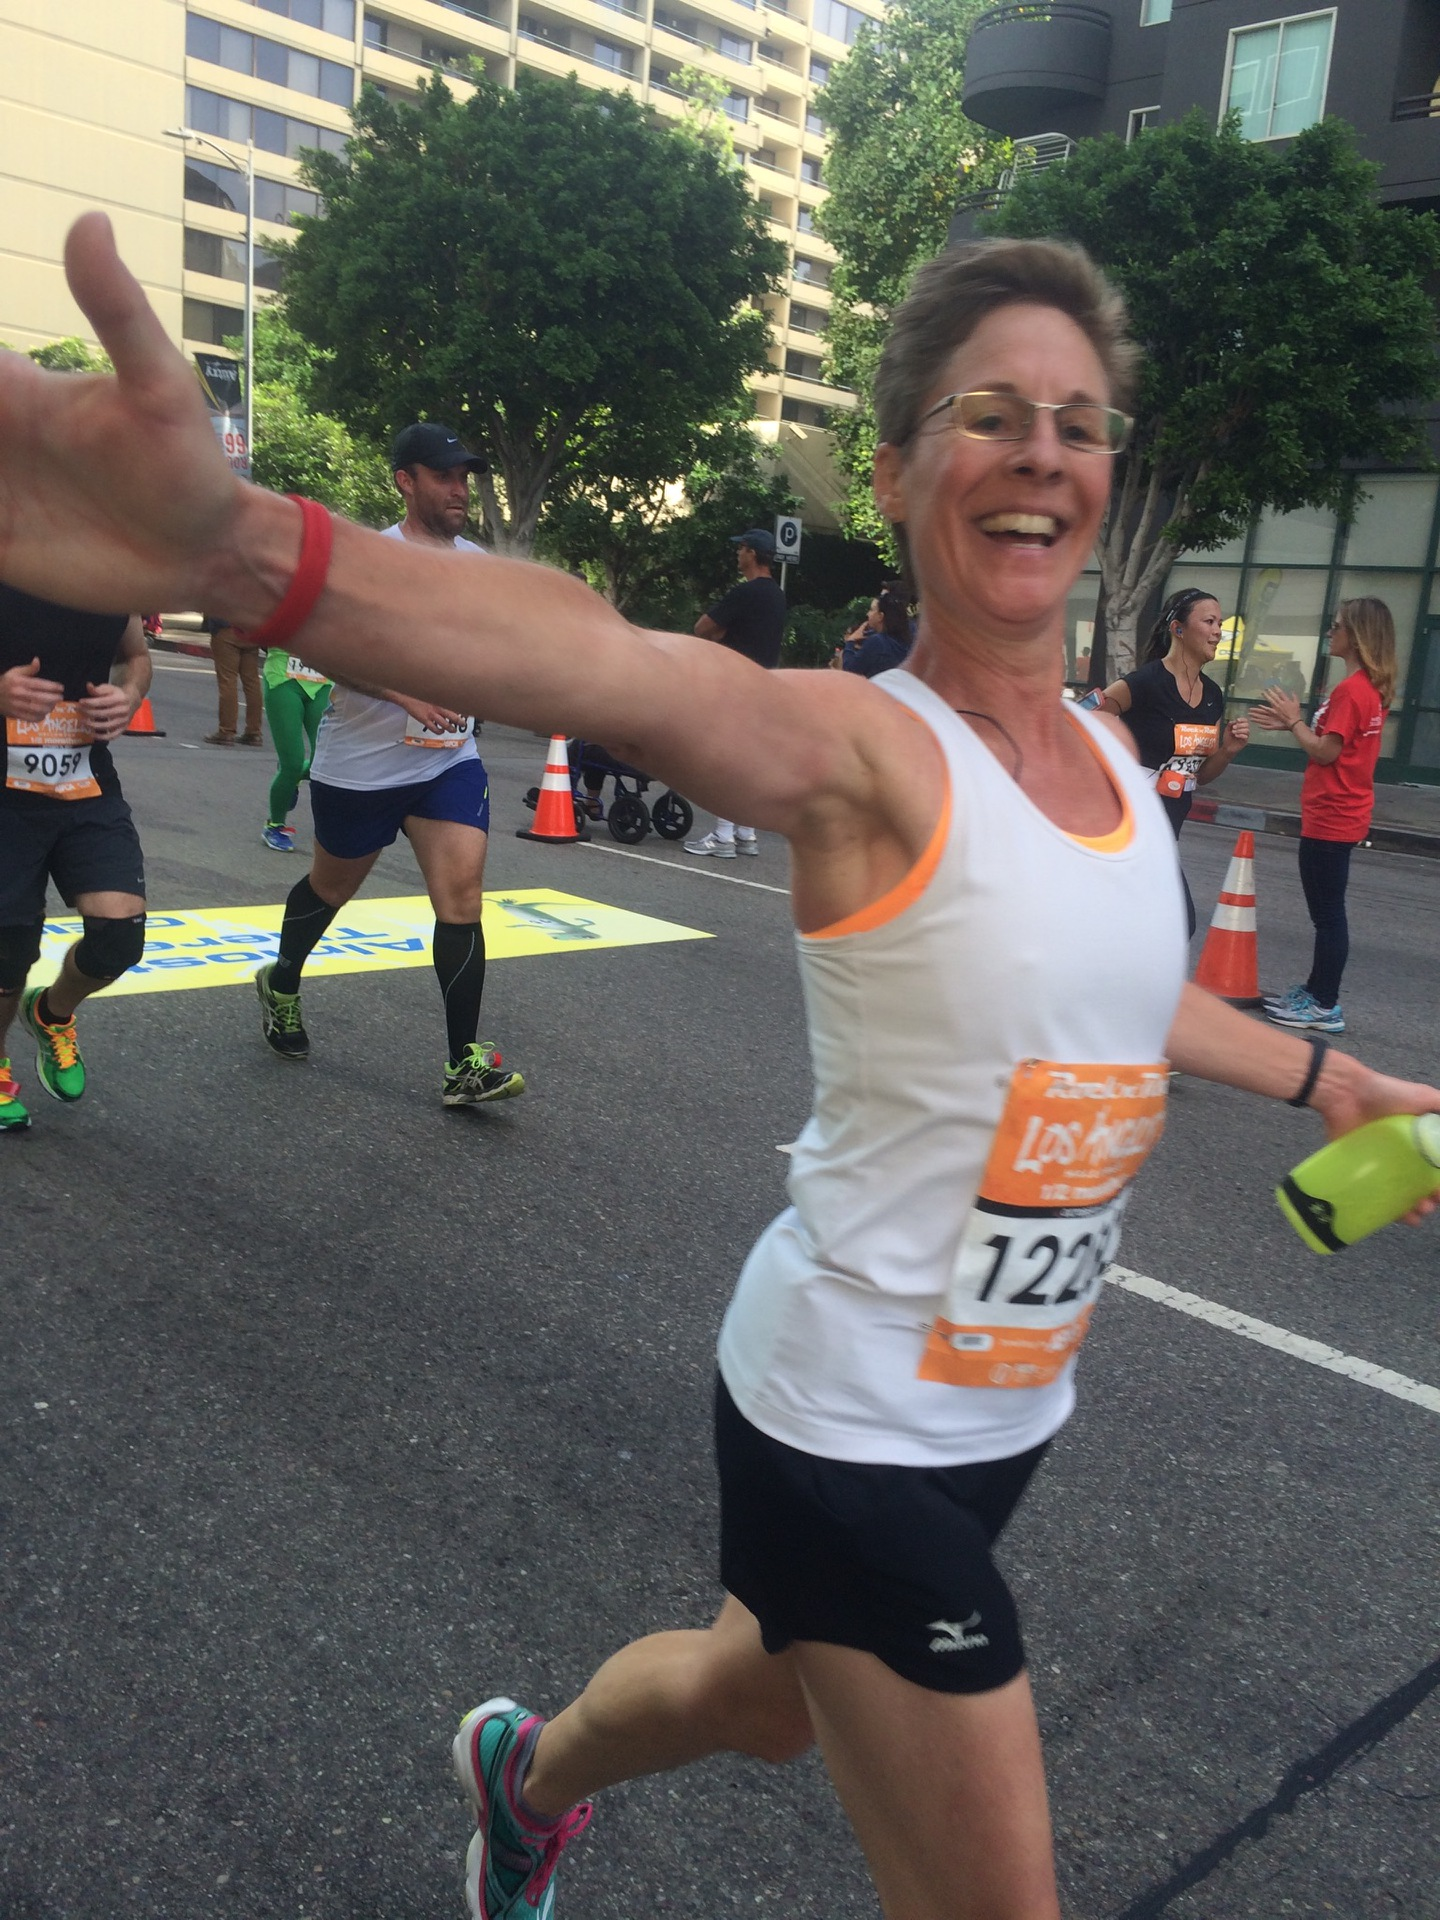 High five at the finish line of my second half-marathon! For my health--and out of curiosity--I took up running when I turned 50.  Together and individually, we can do hard things!